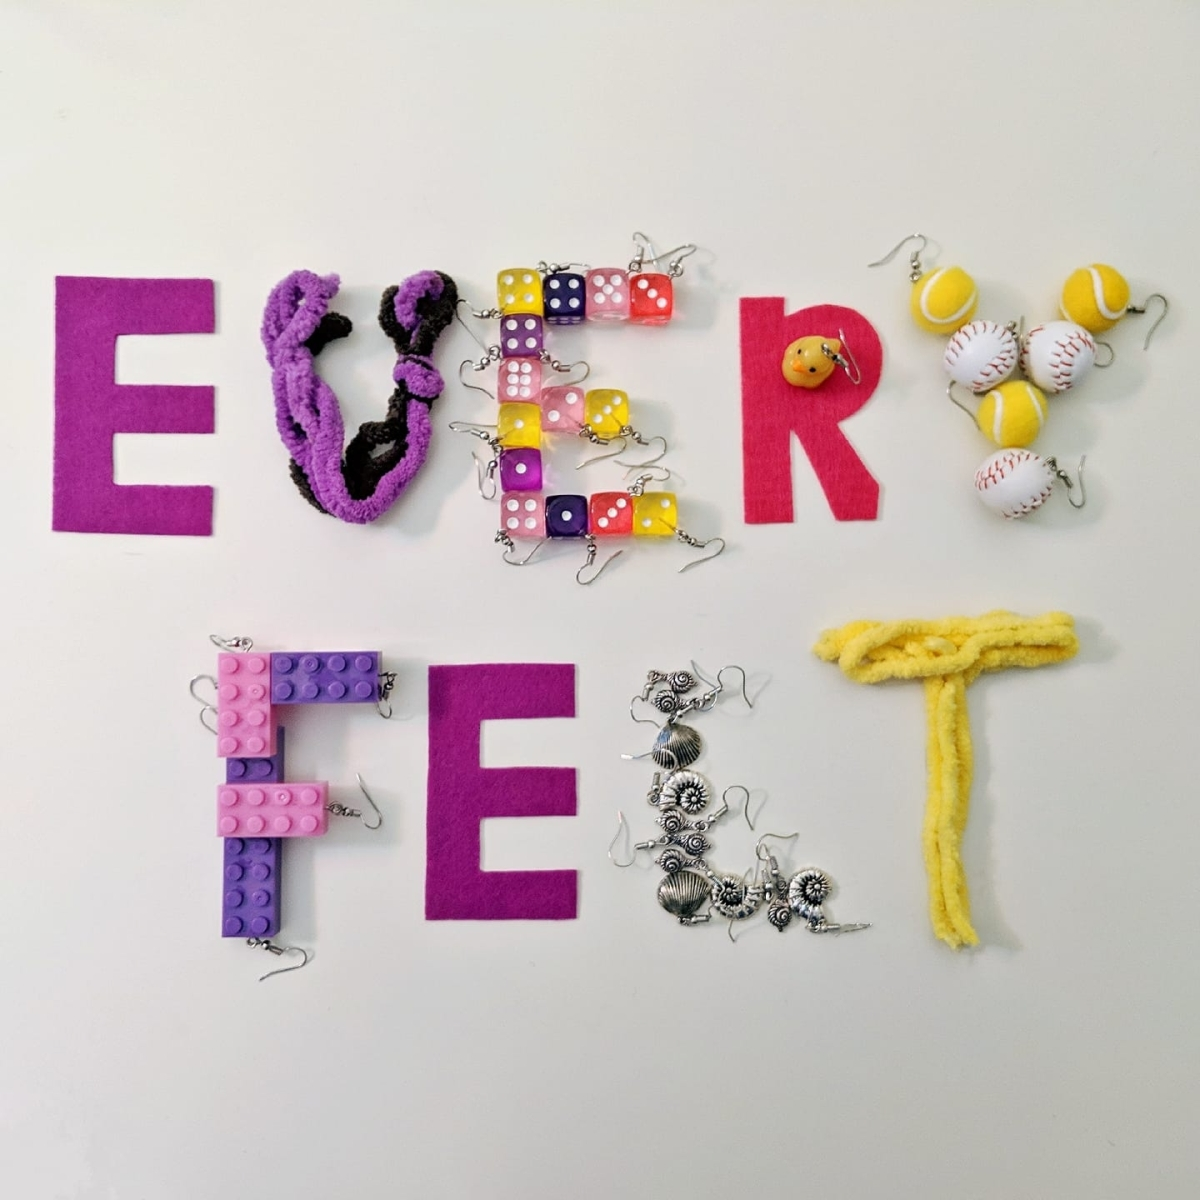 News! I opened an Etsy Store, Everyfelt